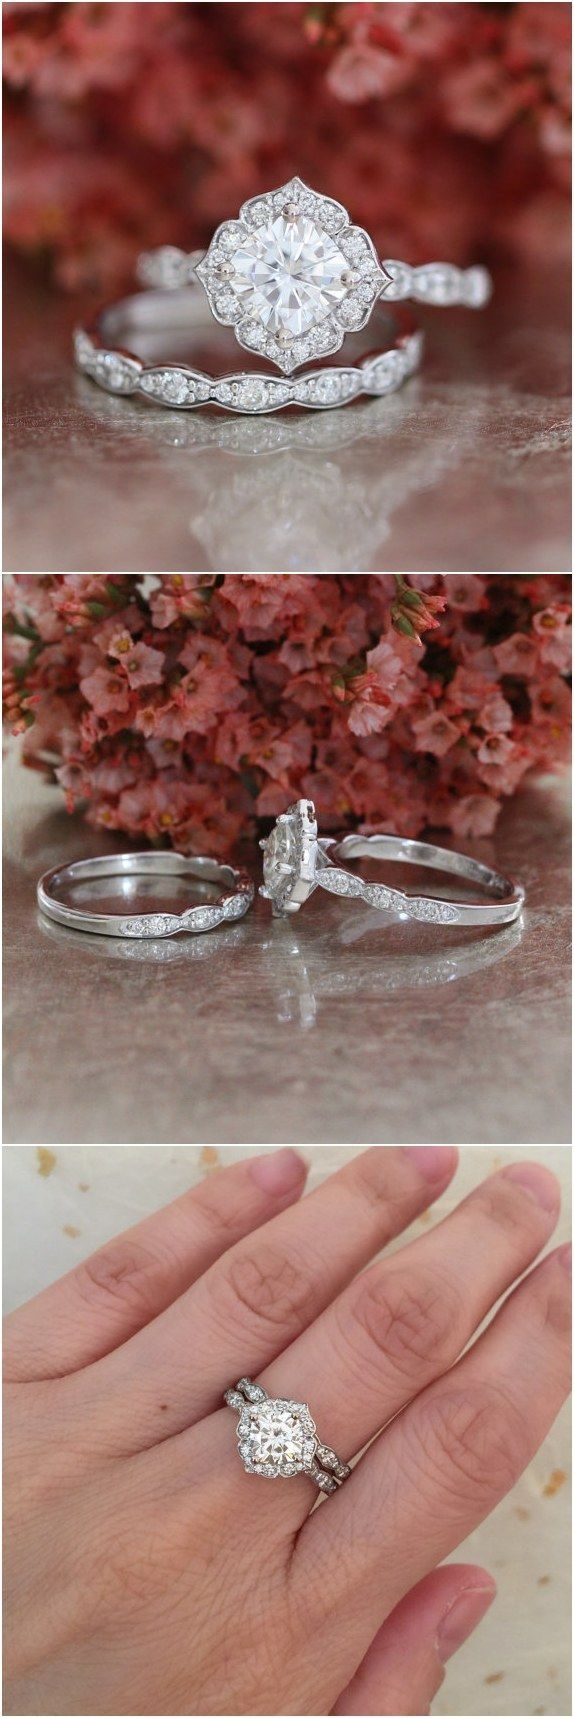 photos gallery forever wedding one within engagement bands moissanite floral ring etsy attachment cut vintage rings photo viewing oval of